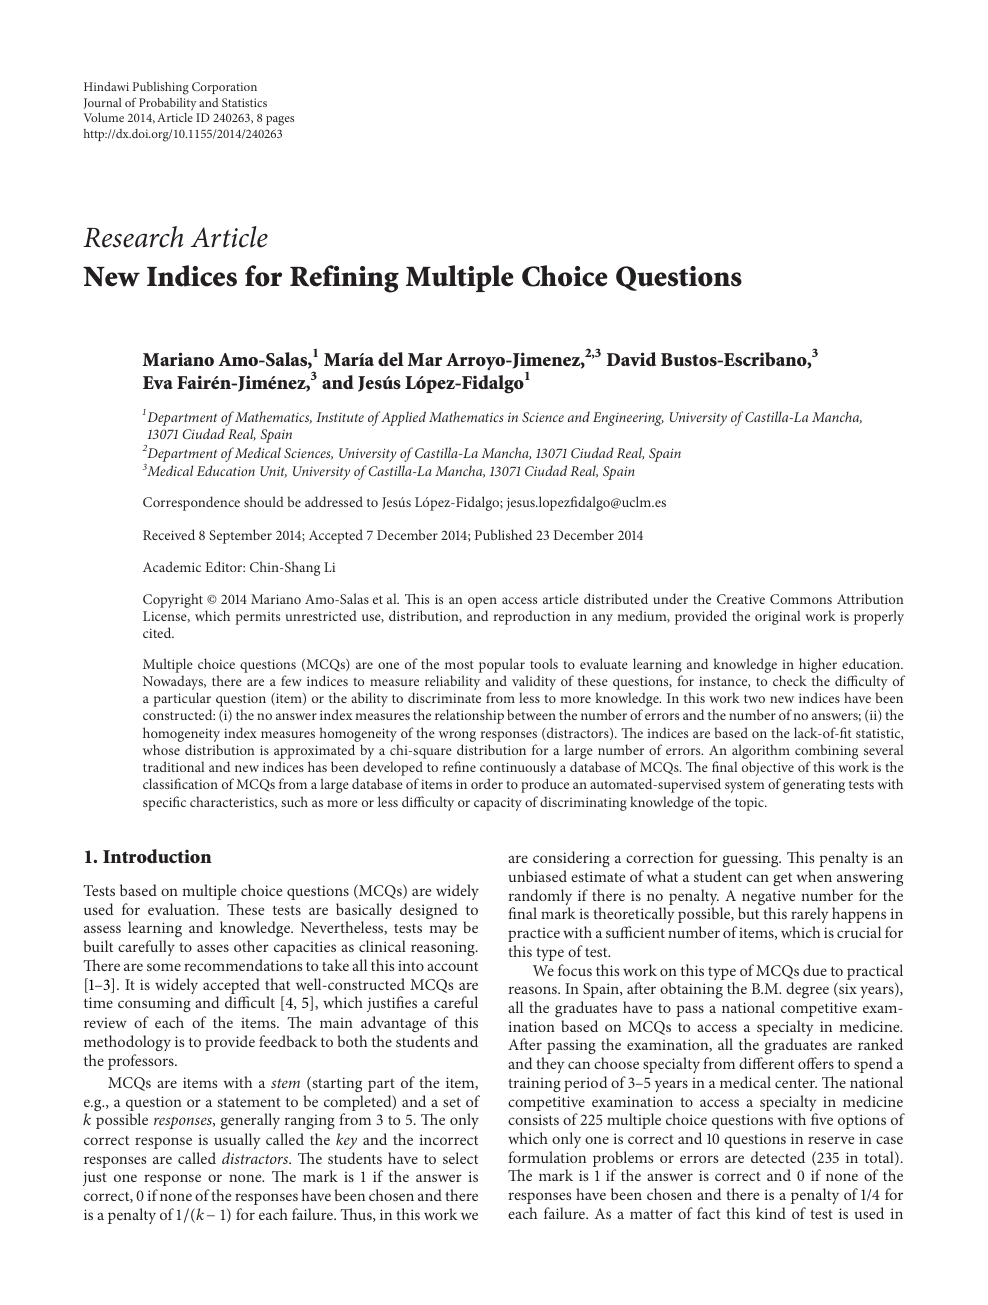 New Indices for Refining Multiple Choice Questions – topic